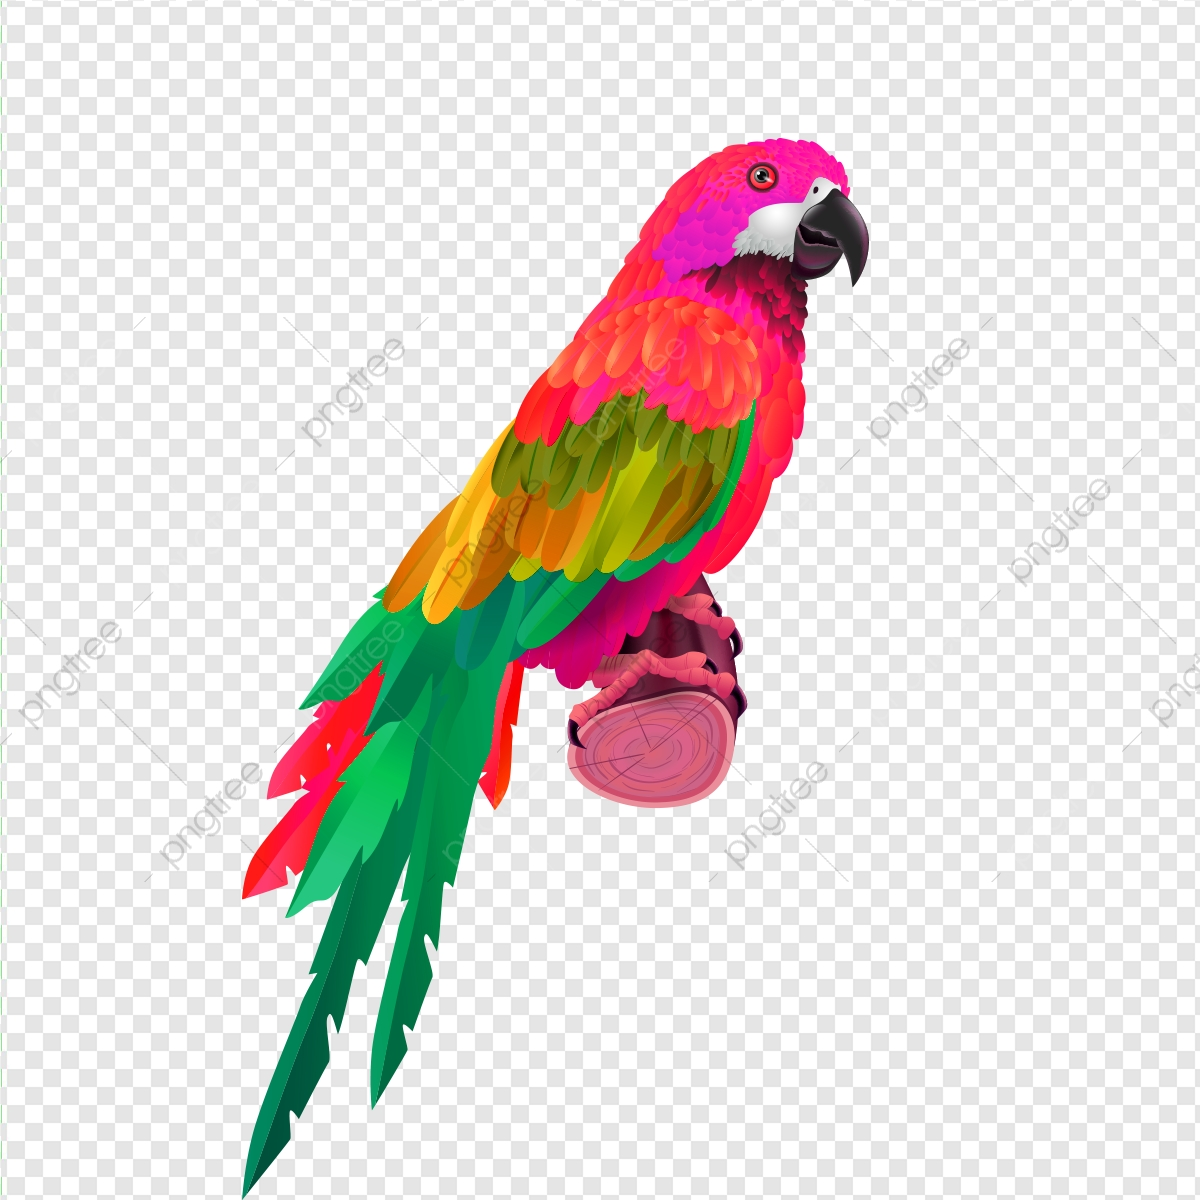 Bird cage love birds. Parrot clipart colorful parrot